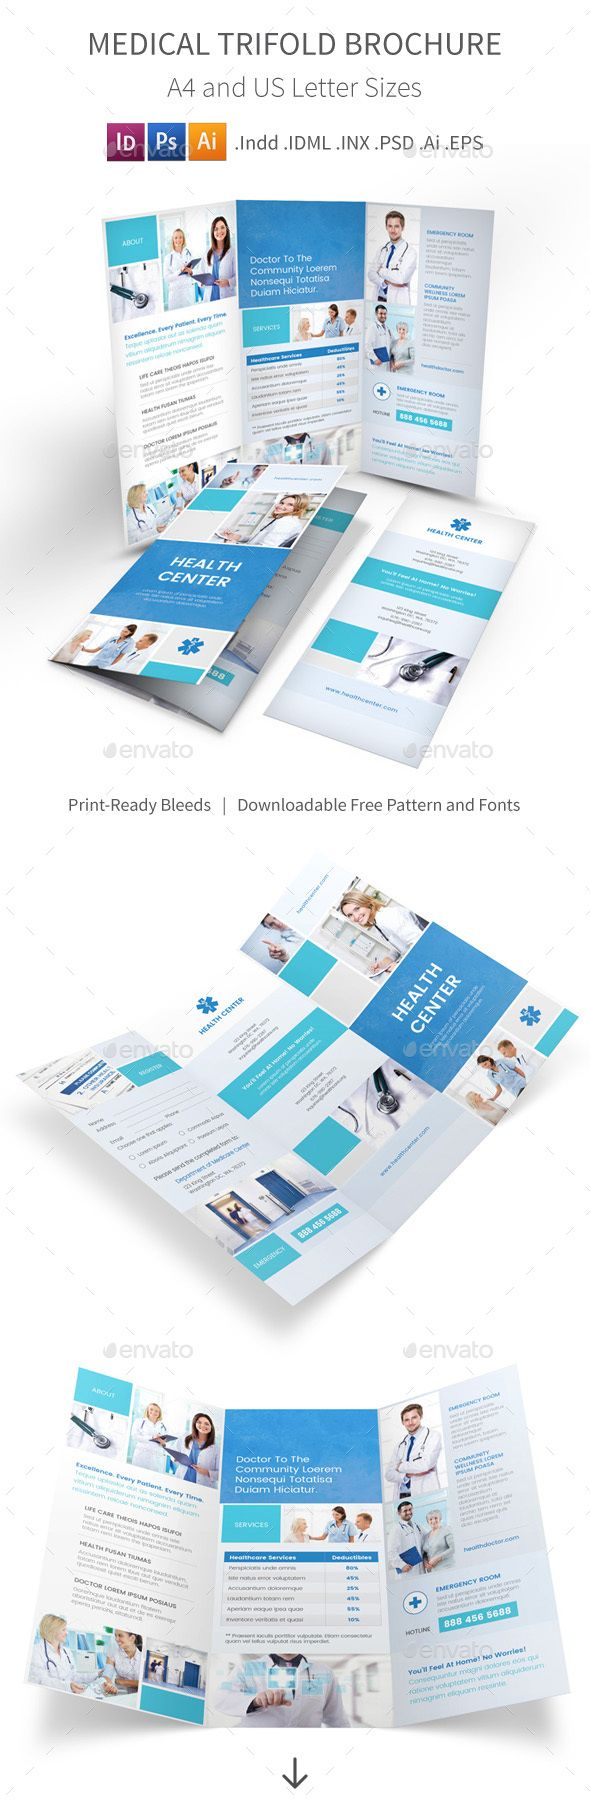 The 25 best medical brochure ideas on pinterest for Tri fold brochure template illustrator